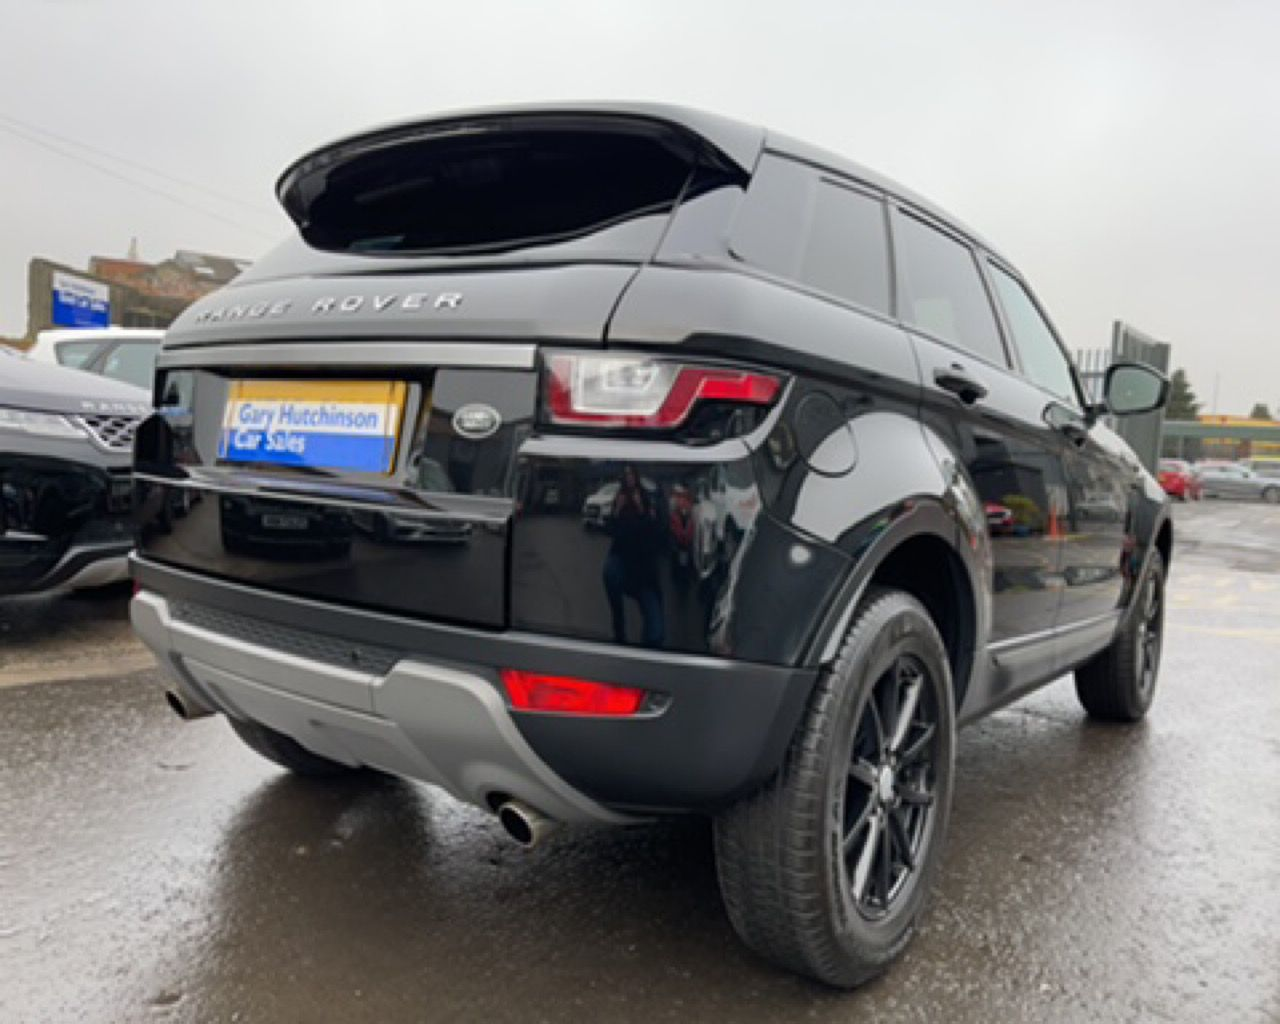 2016 Land Rover Range Rover Evoque 2.0 ED4 SE Diesel Manual  – Gary Hutchinson Car Sales Belfast full